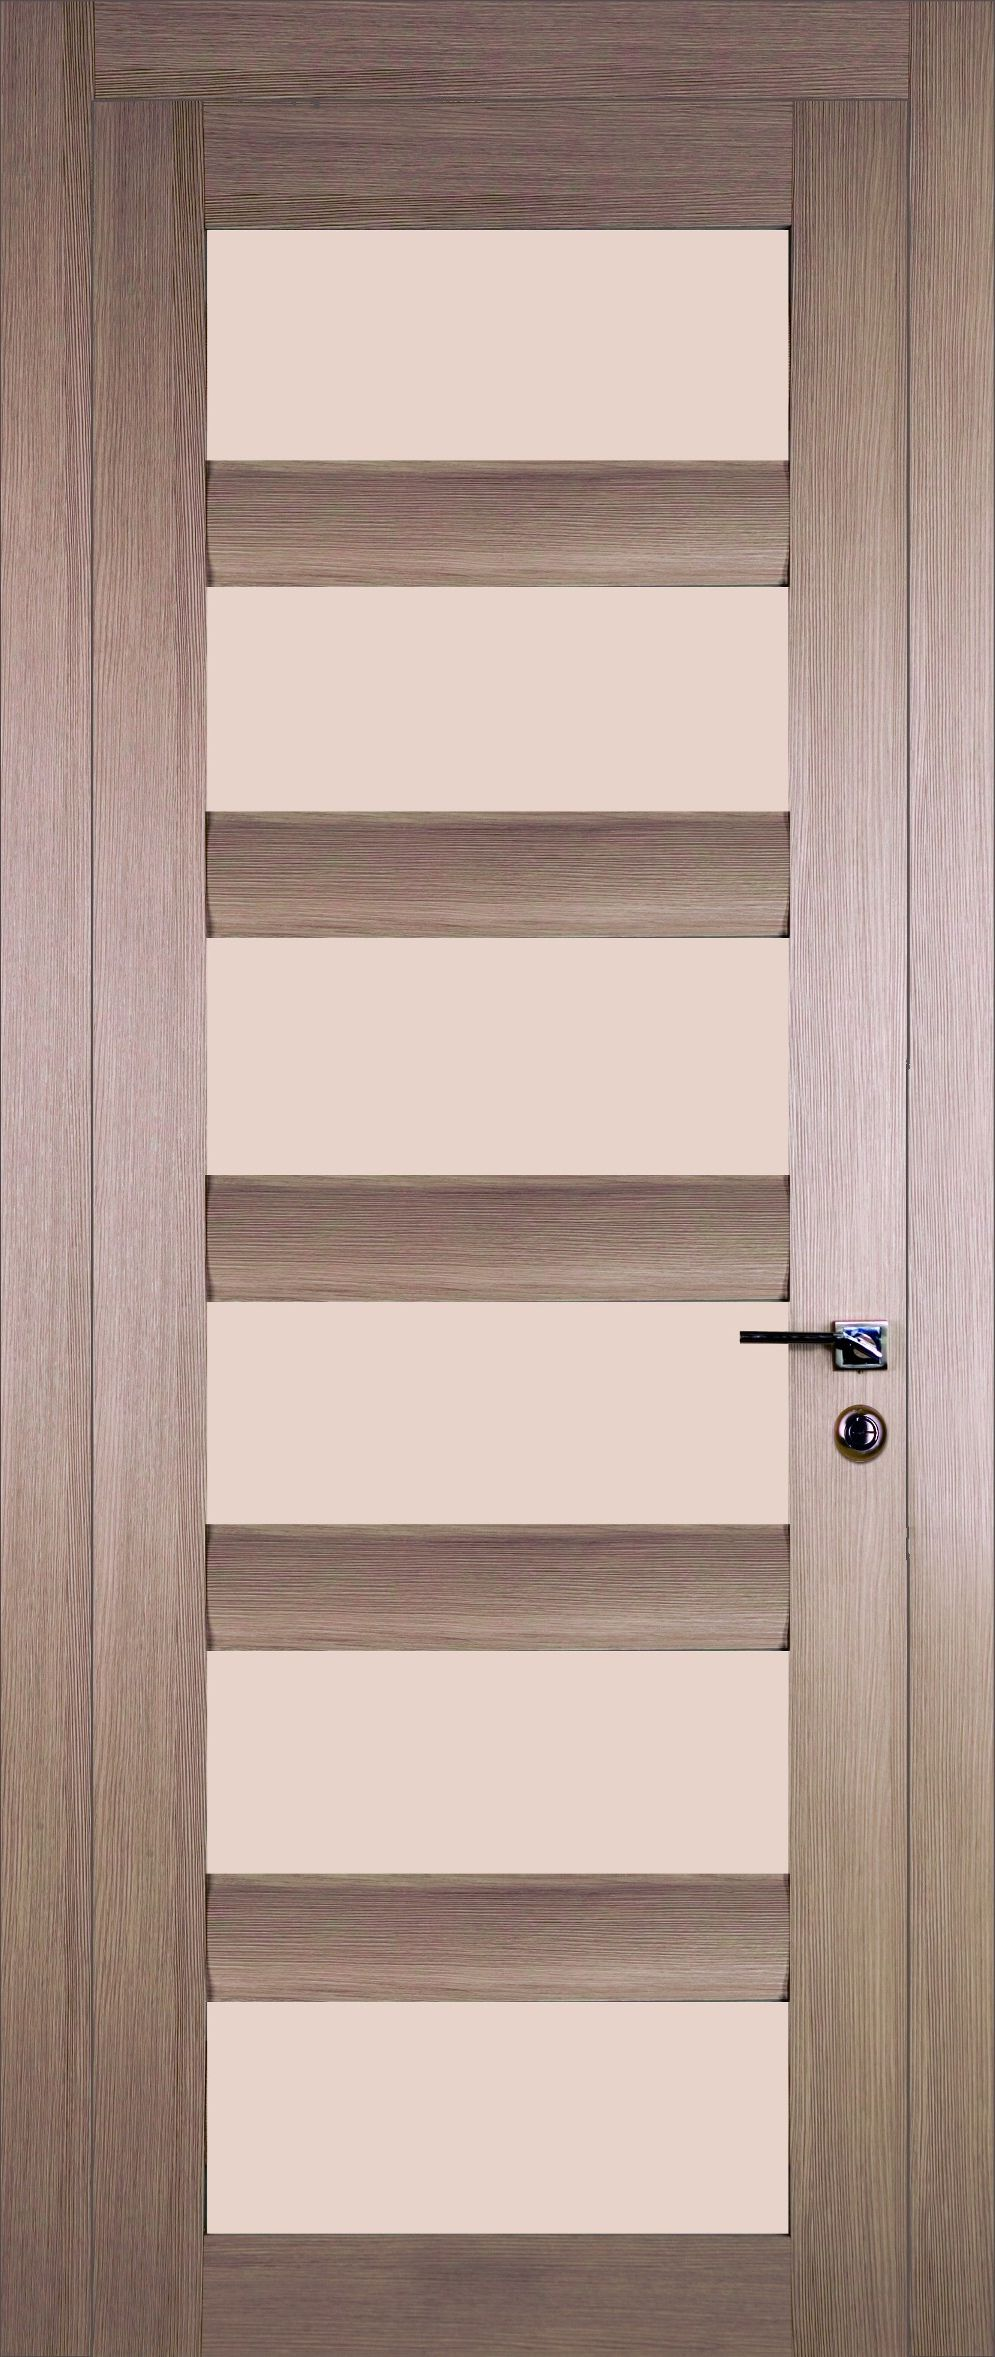 Modern wooden door in techno style